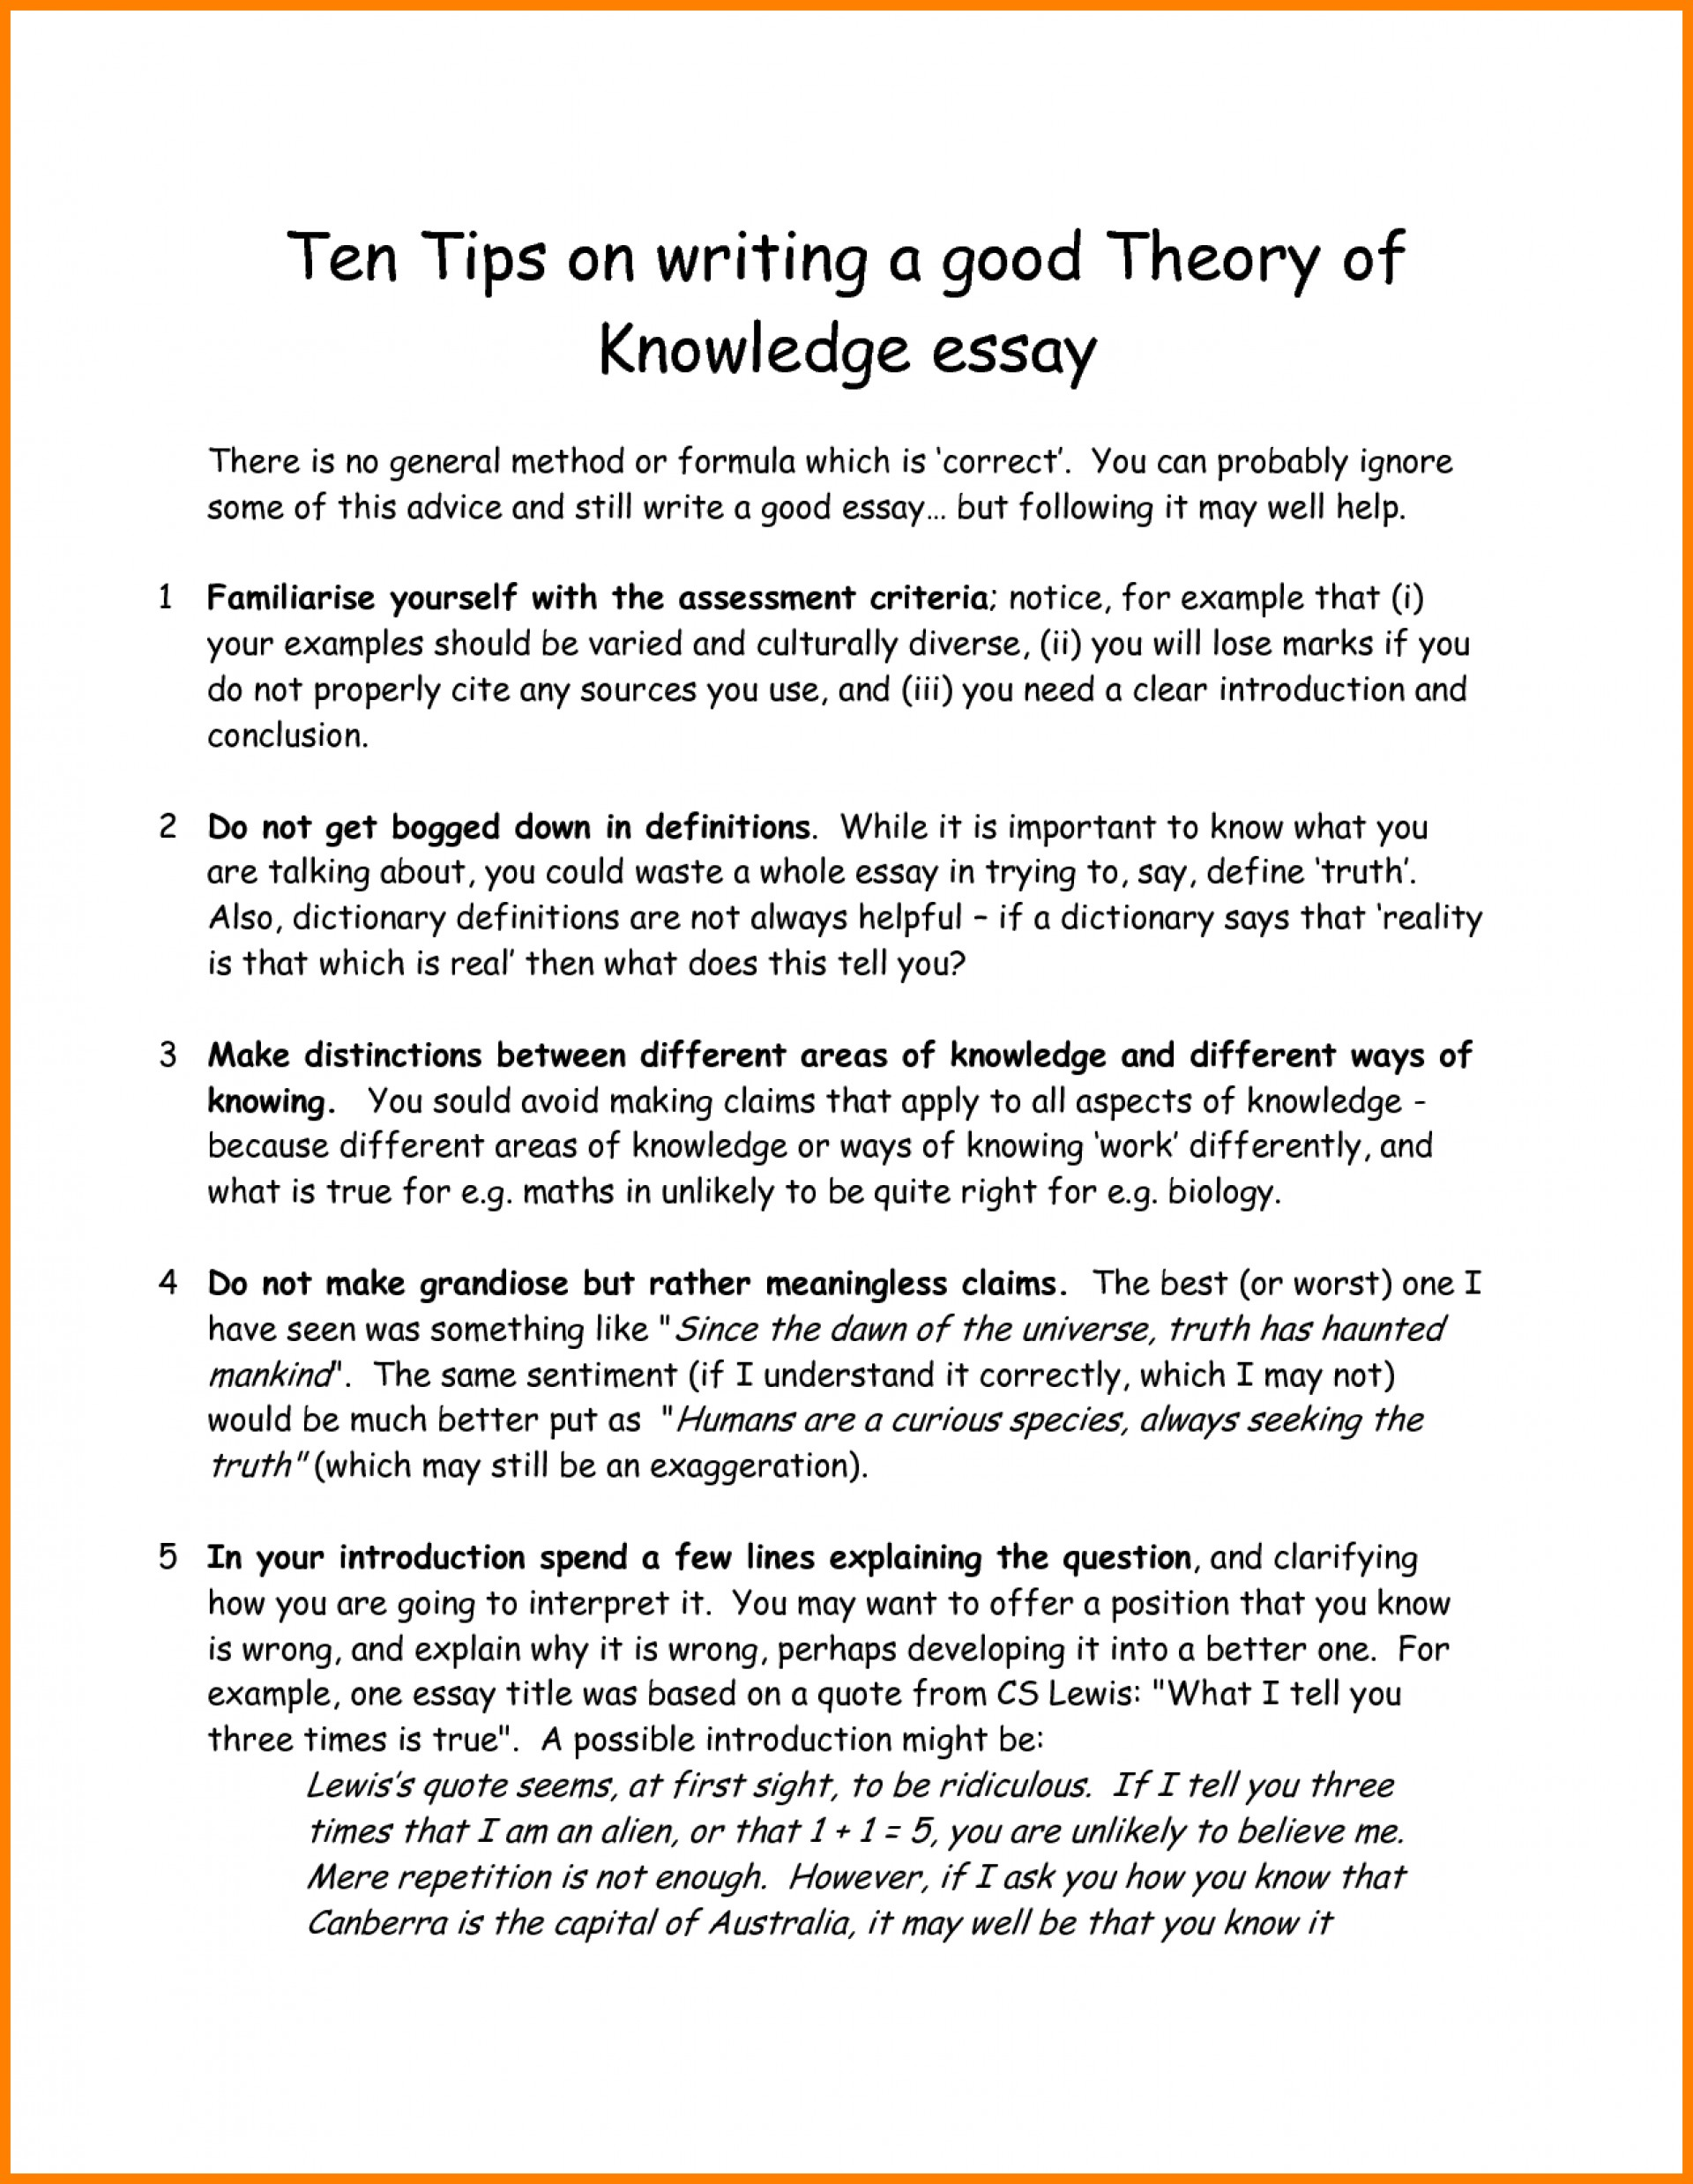 007 How To Start An Essay Examples Good Ways English The Paragraph Observation Off About Yourself Ledger Pa Informative Writing Analysis Conclusion Academic Top Write Introduction 1920